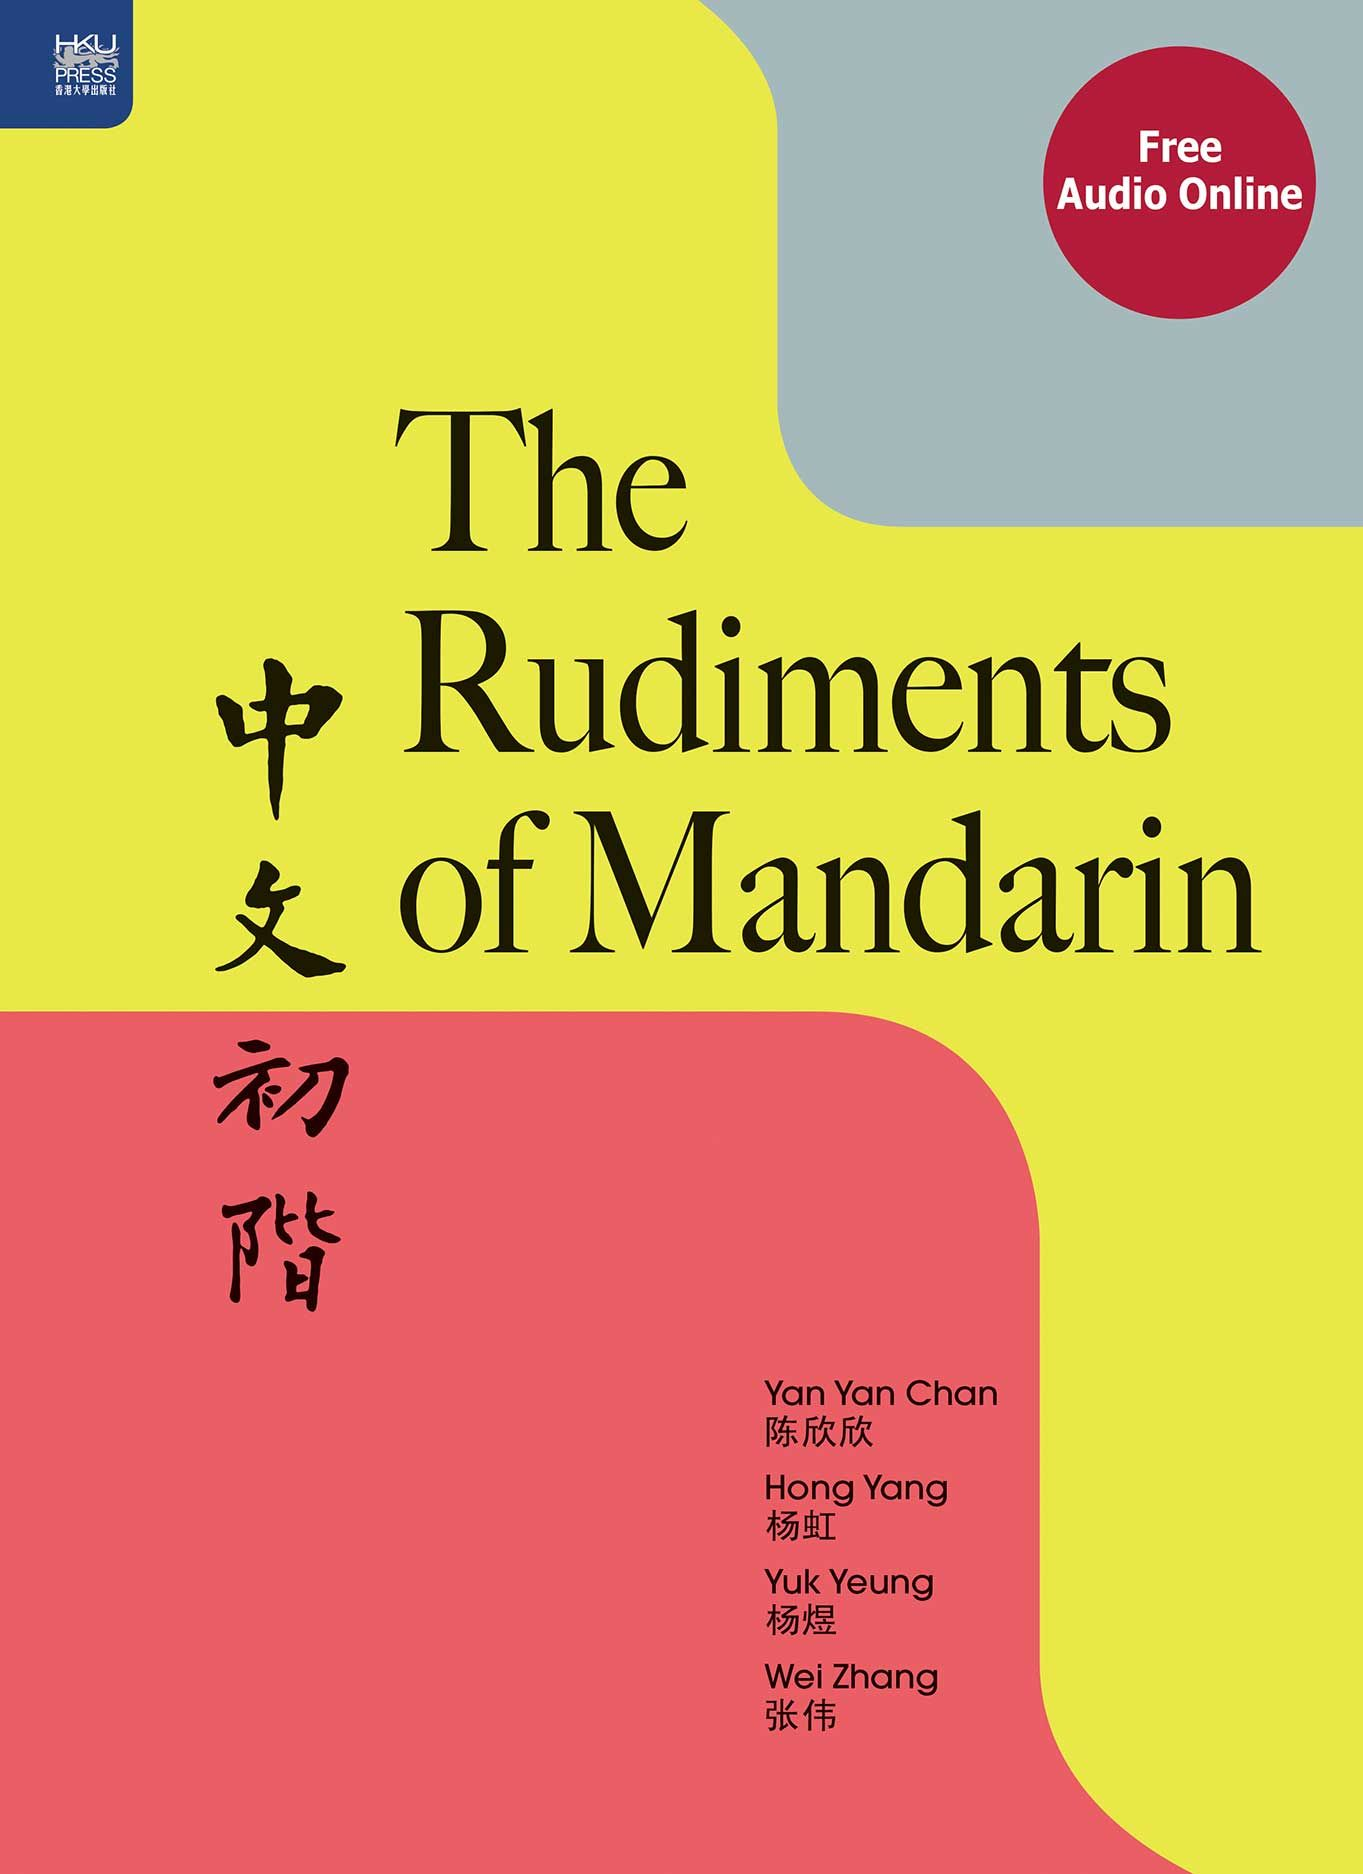 The Rudiments of Mandarin